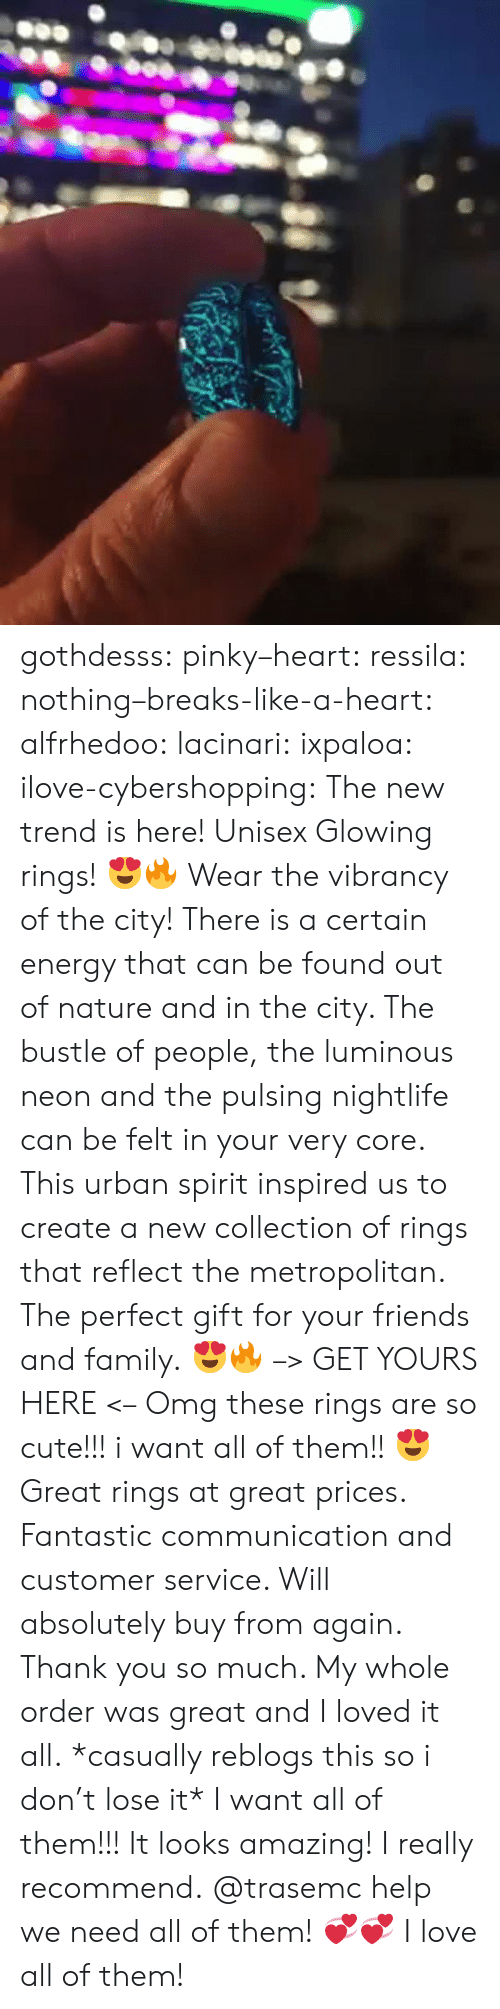 communication: gothdesss:  pinky–heart: ressila:  nothing–breaks-like-a-heart:  alfrhedoo:  lacinari:  ixpaloa:  ilove-cybershopping:  The new trend is here! Unisex Glowing rings! 😍🔥 Wear the vibrancy of the city! There is a certain energy that can be found out of nature and in the city. The bustle of people, the luminous neon and the pulsing nightlife can be felt in your very core. This urban spirit inspired us to create a new collection of rings that reflect the metropolitan. The perfect gift for your friends and family. 😍🔥 –> GET YOURS HERE <–  Omg these rings are so cute!!! i want all of them!! 😍  Great rings at great prices. Fantastic communication and customer service. Will absolutely buy from again. Thank you so much. My whole order was great and I loved it all.  *casually reblogs this so i don't lose it*  I want all of them!!!  It looks amazing! I really recommend.  @trasemc help we need all of them! 💞💞  I love all of them!